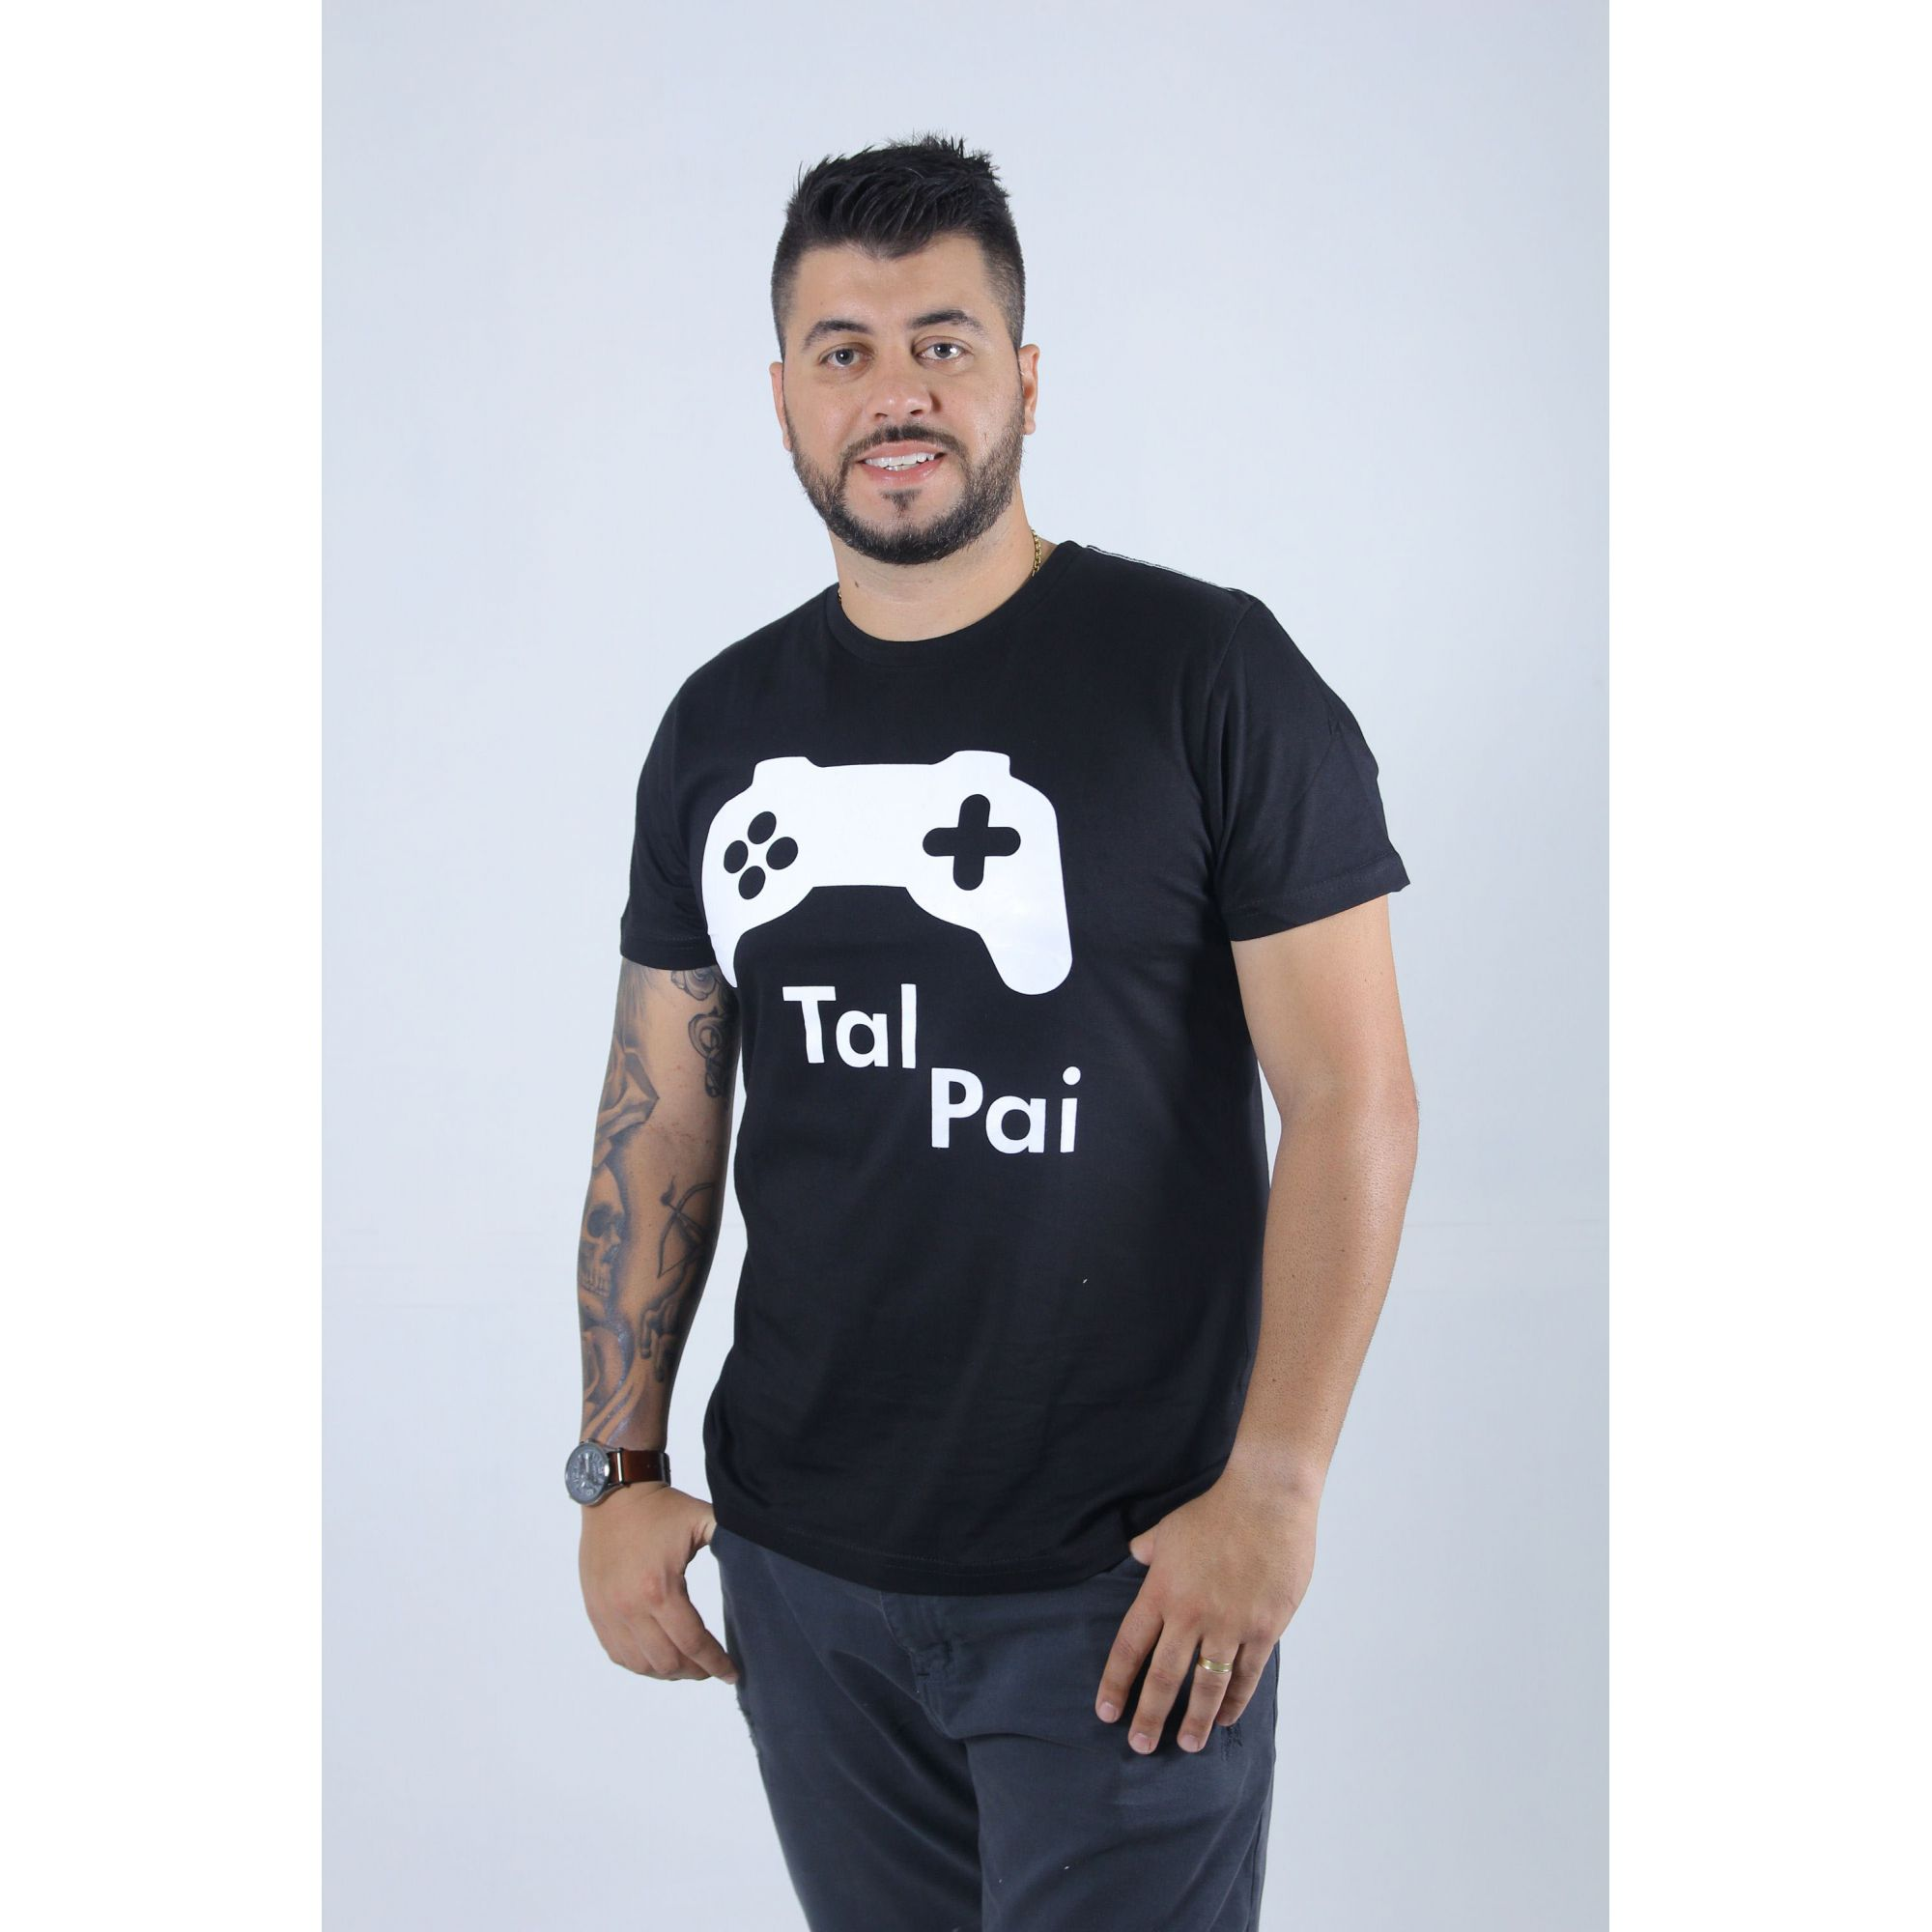 Camiseta Tal Pai Game